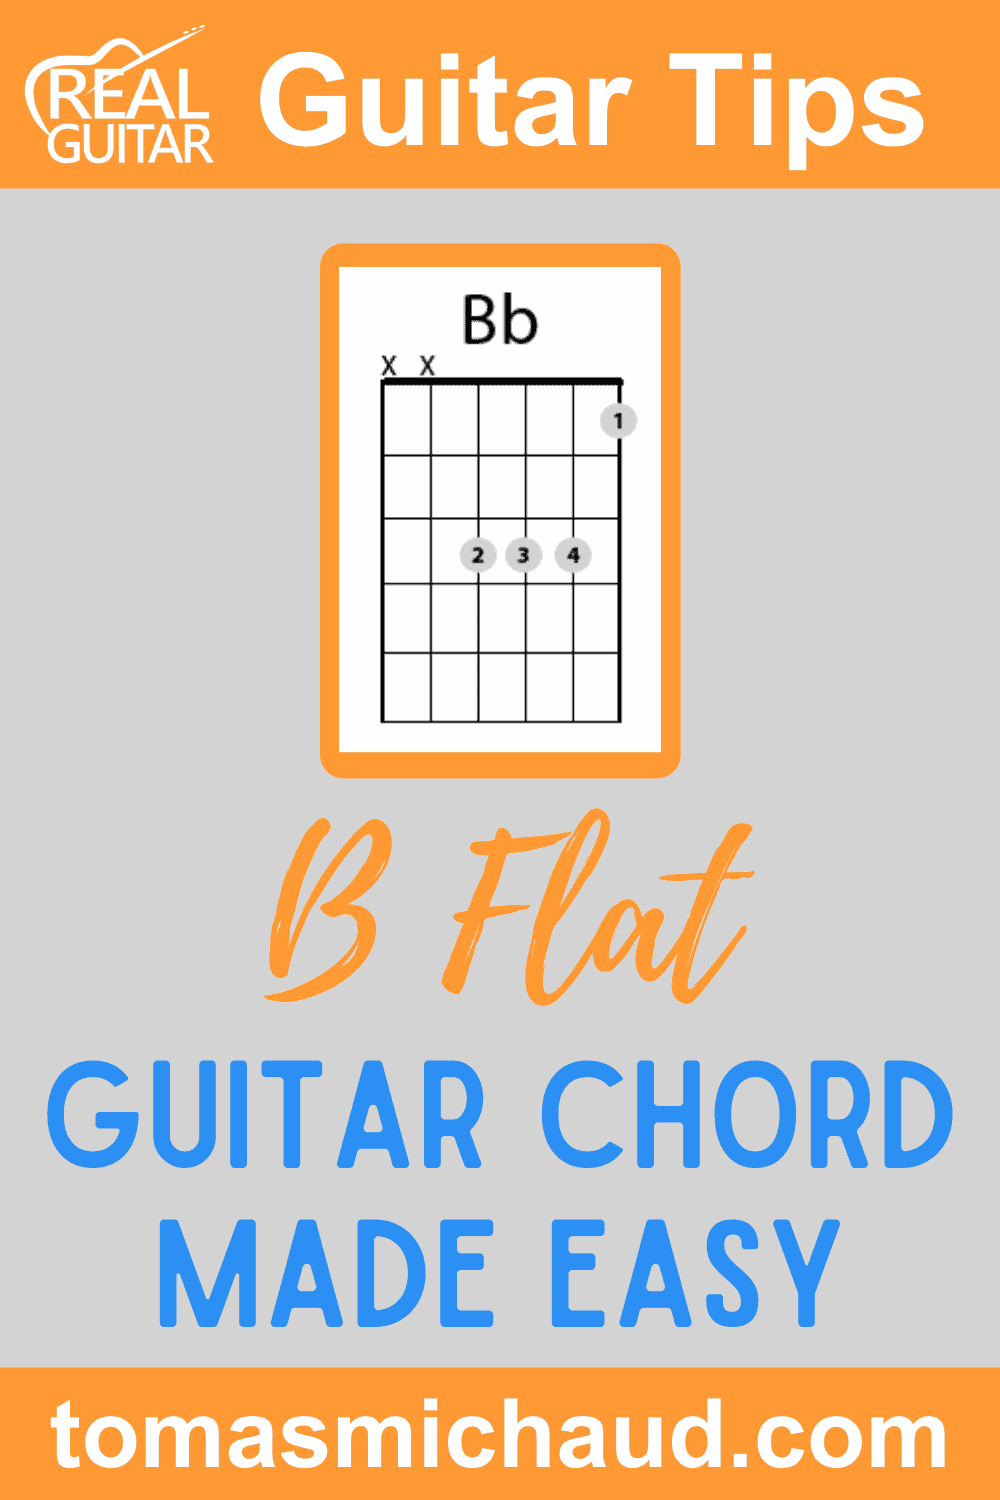 B Flat Guitar Chord Made Easy